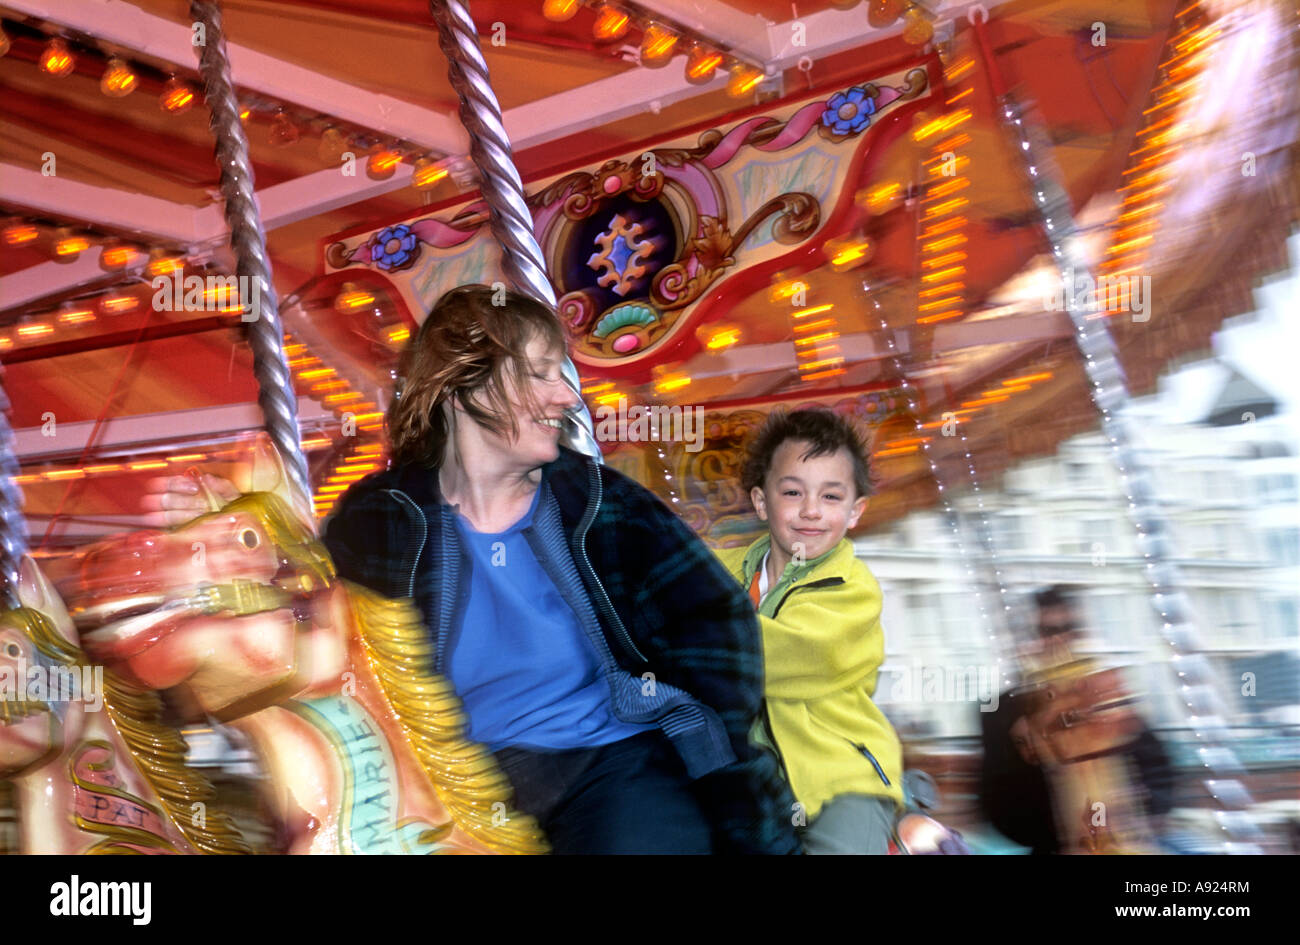 Mother and son on a merry-go-round, Brighton seafront, East Sussex. - Stock Image